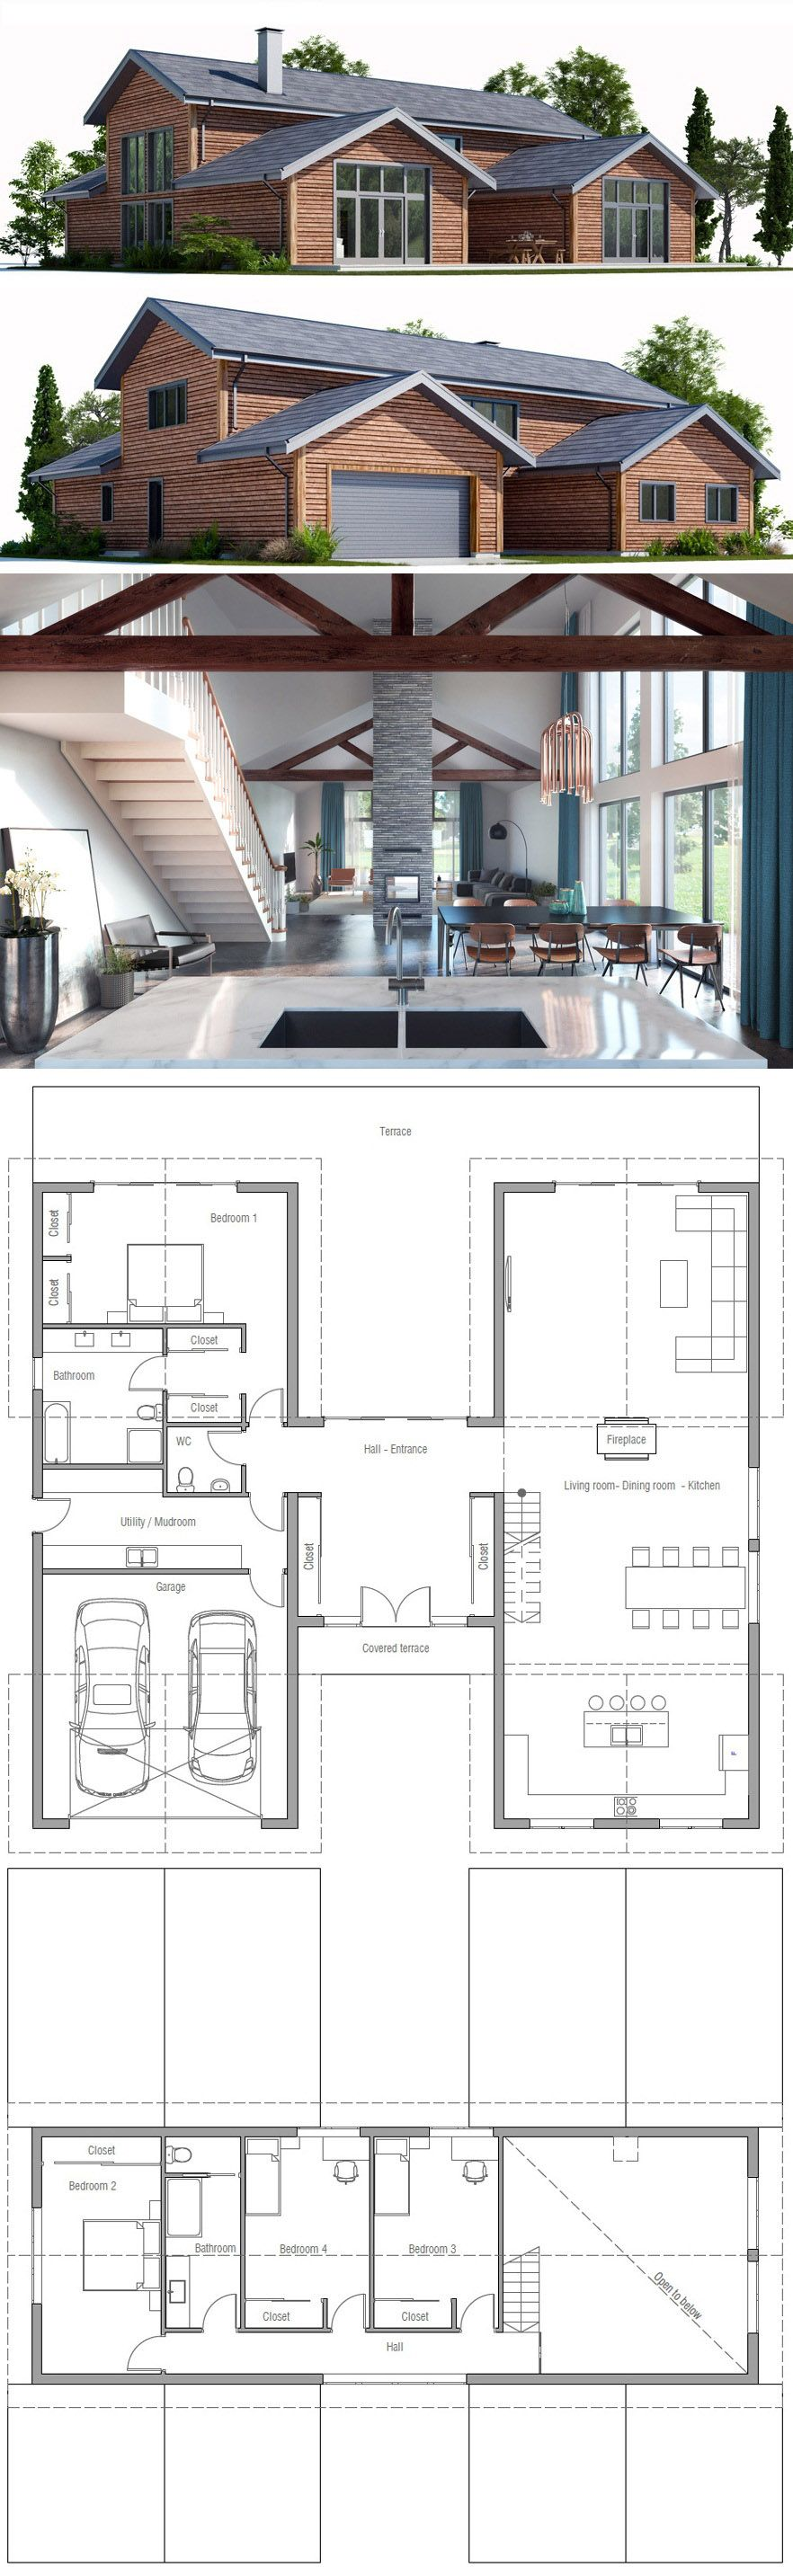 House plan futer home in 2019 container house plans - Simple container house plans ...